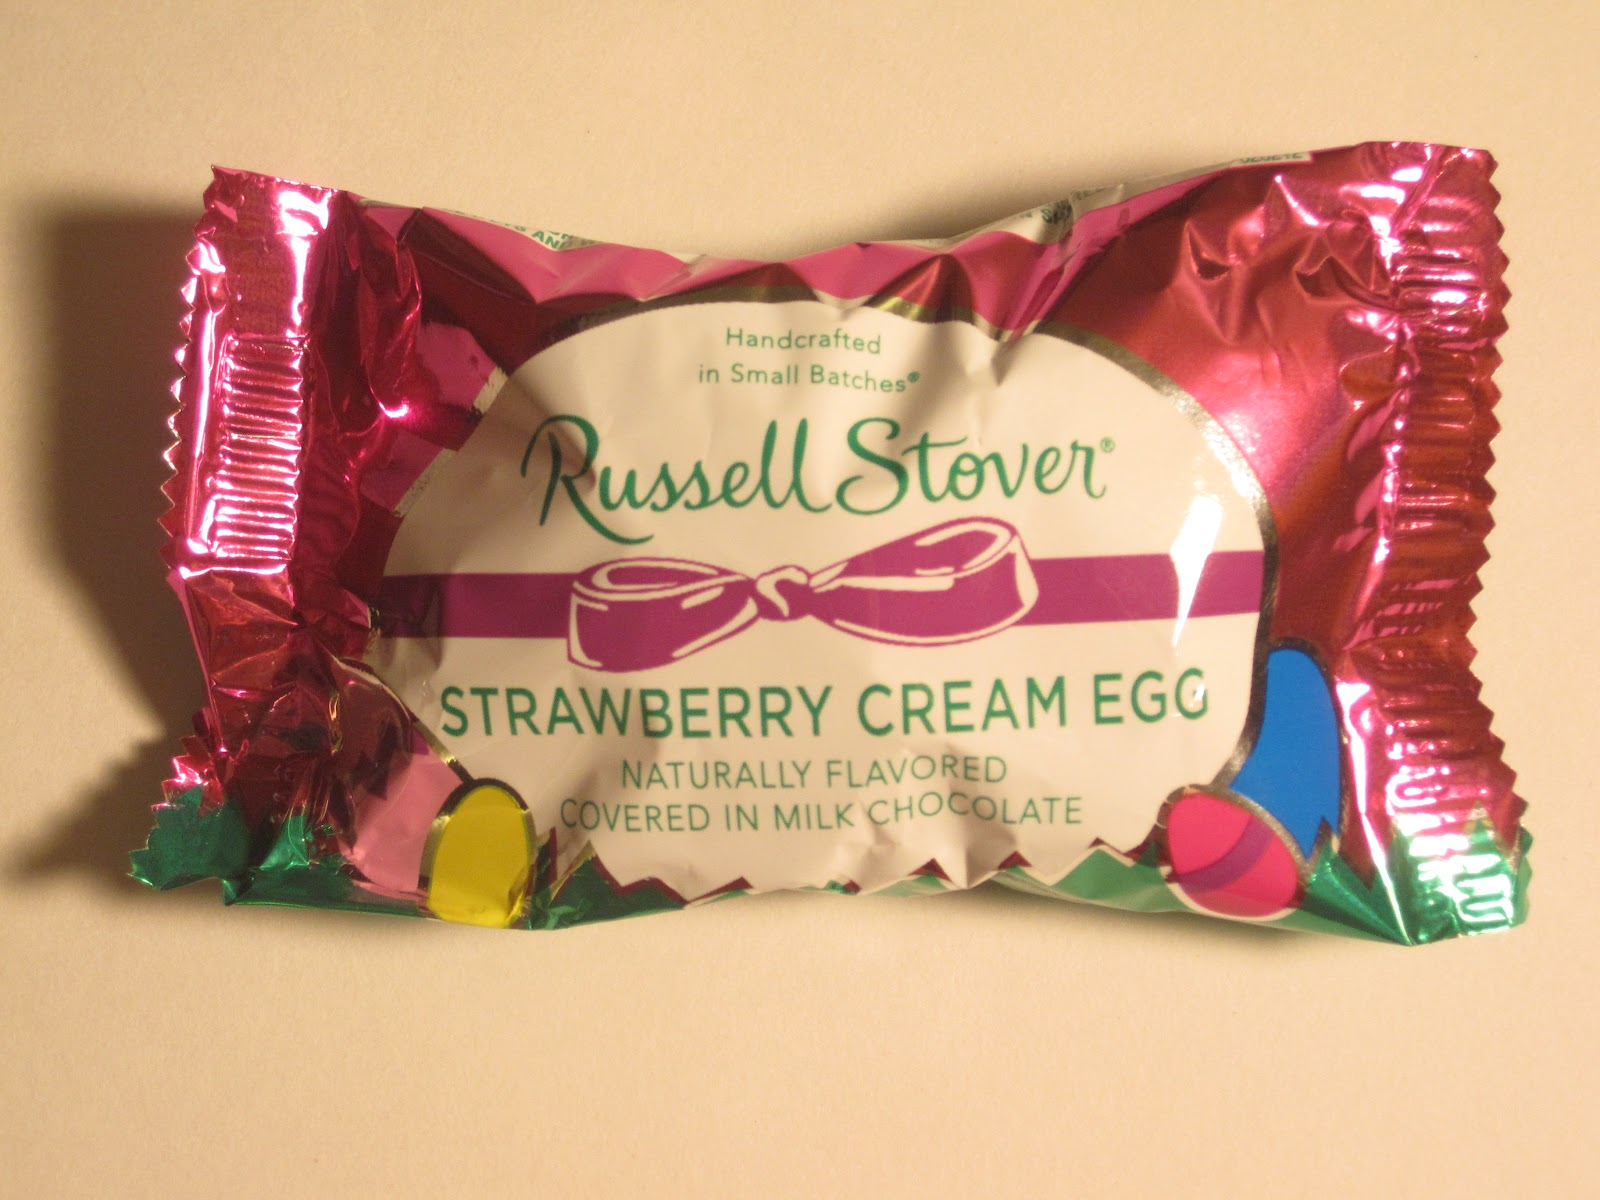 walking the candy aisle: russell stover strawberry cream egg review